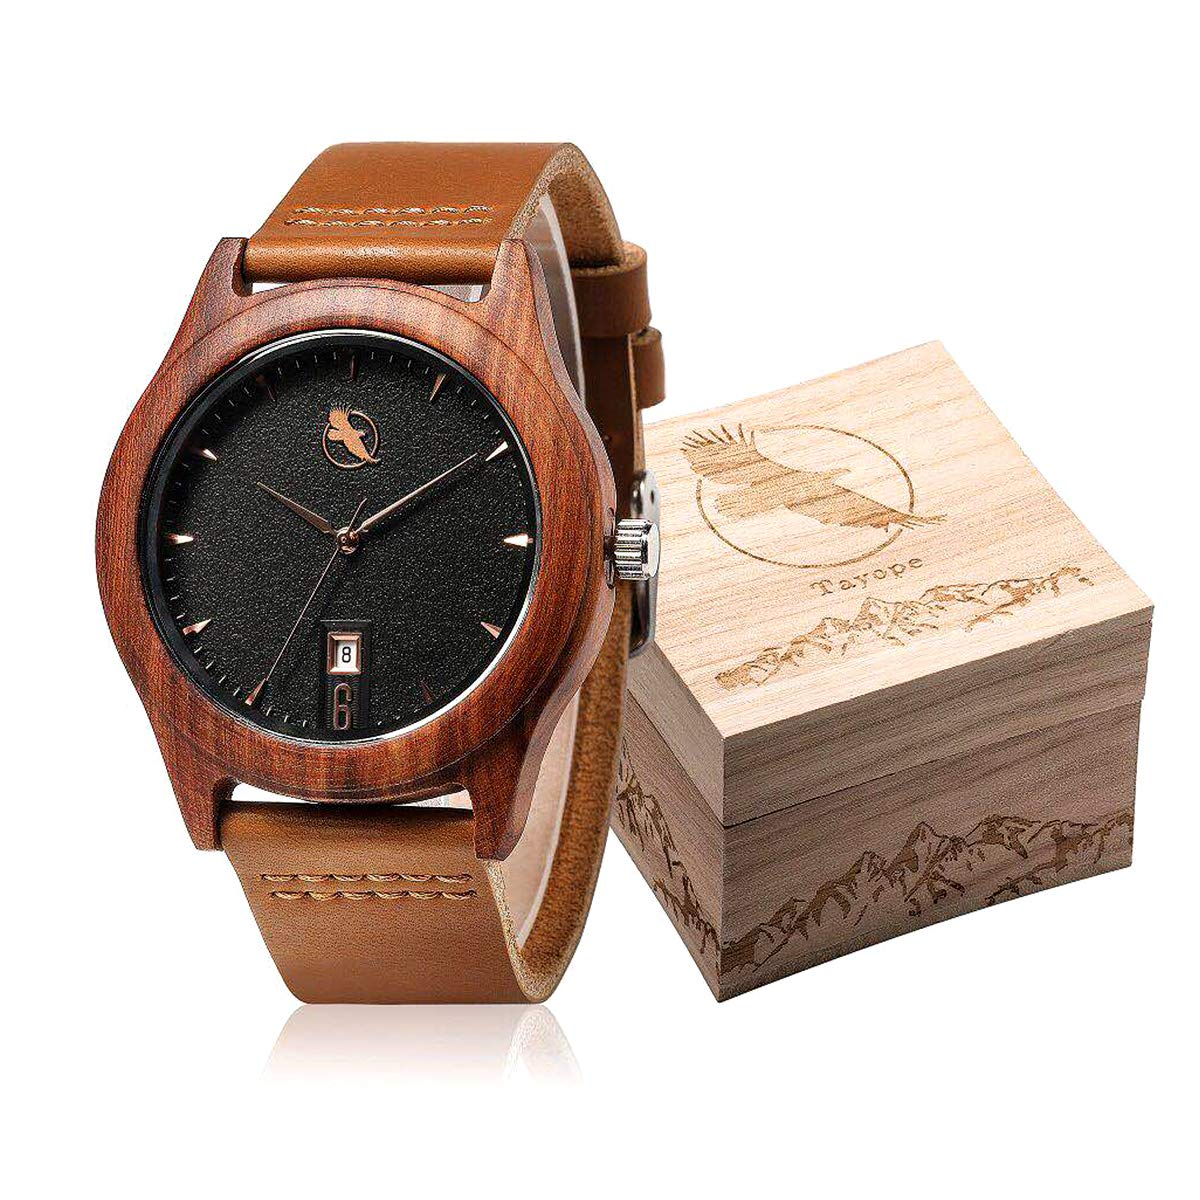 CDM product Tayope Wood Watches for Men Women, Bamboo Wood Leather Quartz Wristwatch in Engraved Box big image